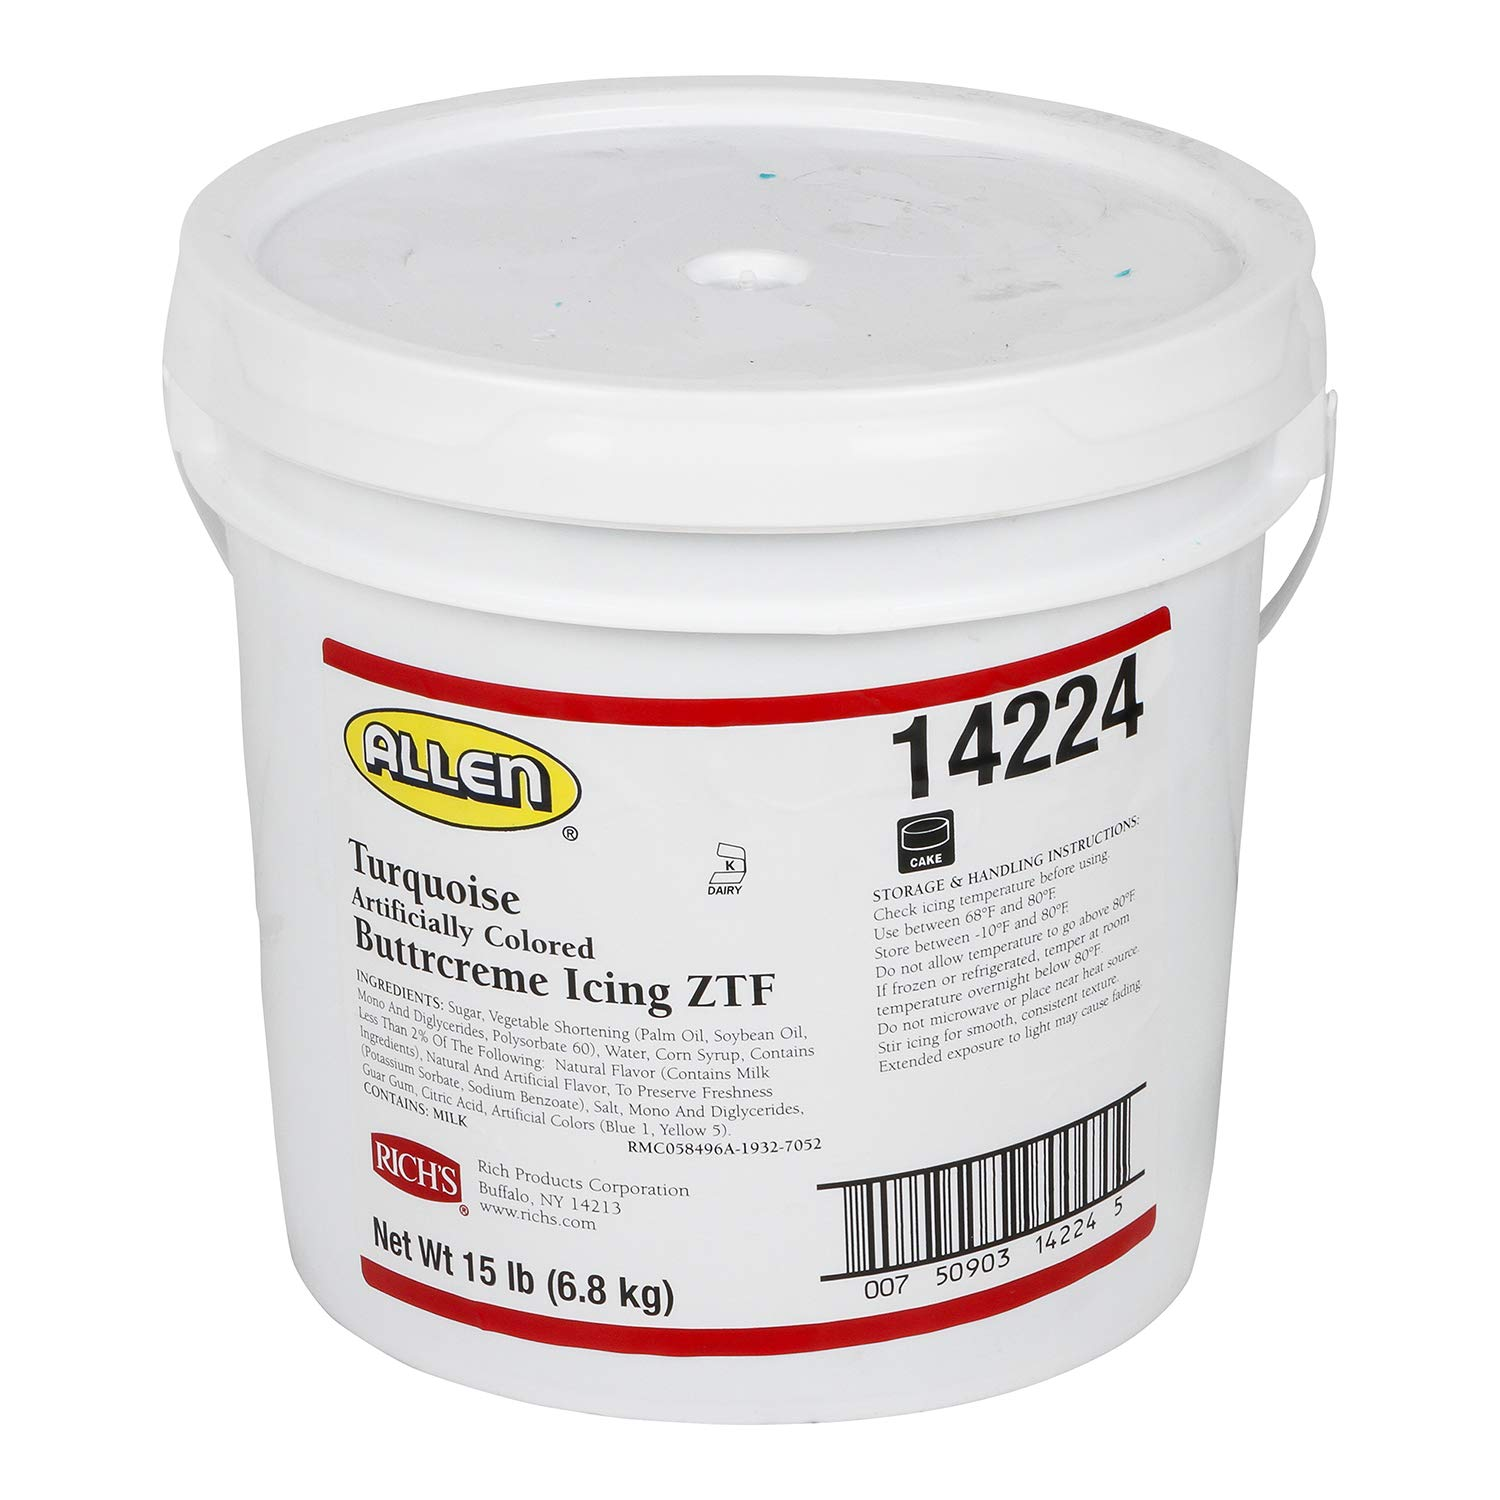 Rich's JW Allen Pre-Whipped Buttrcreme Icing ZTF, Turquoise, 15 lb